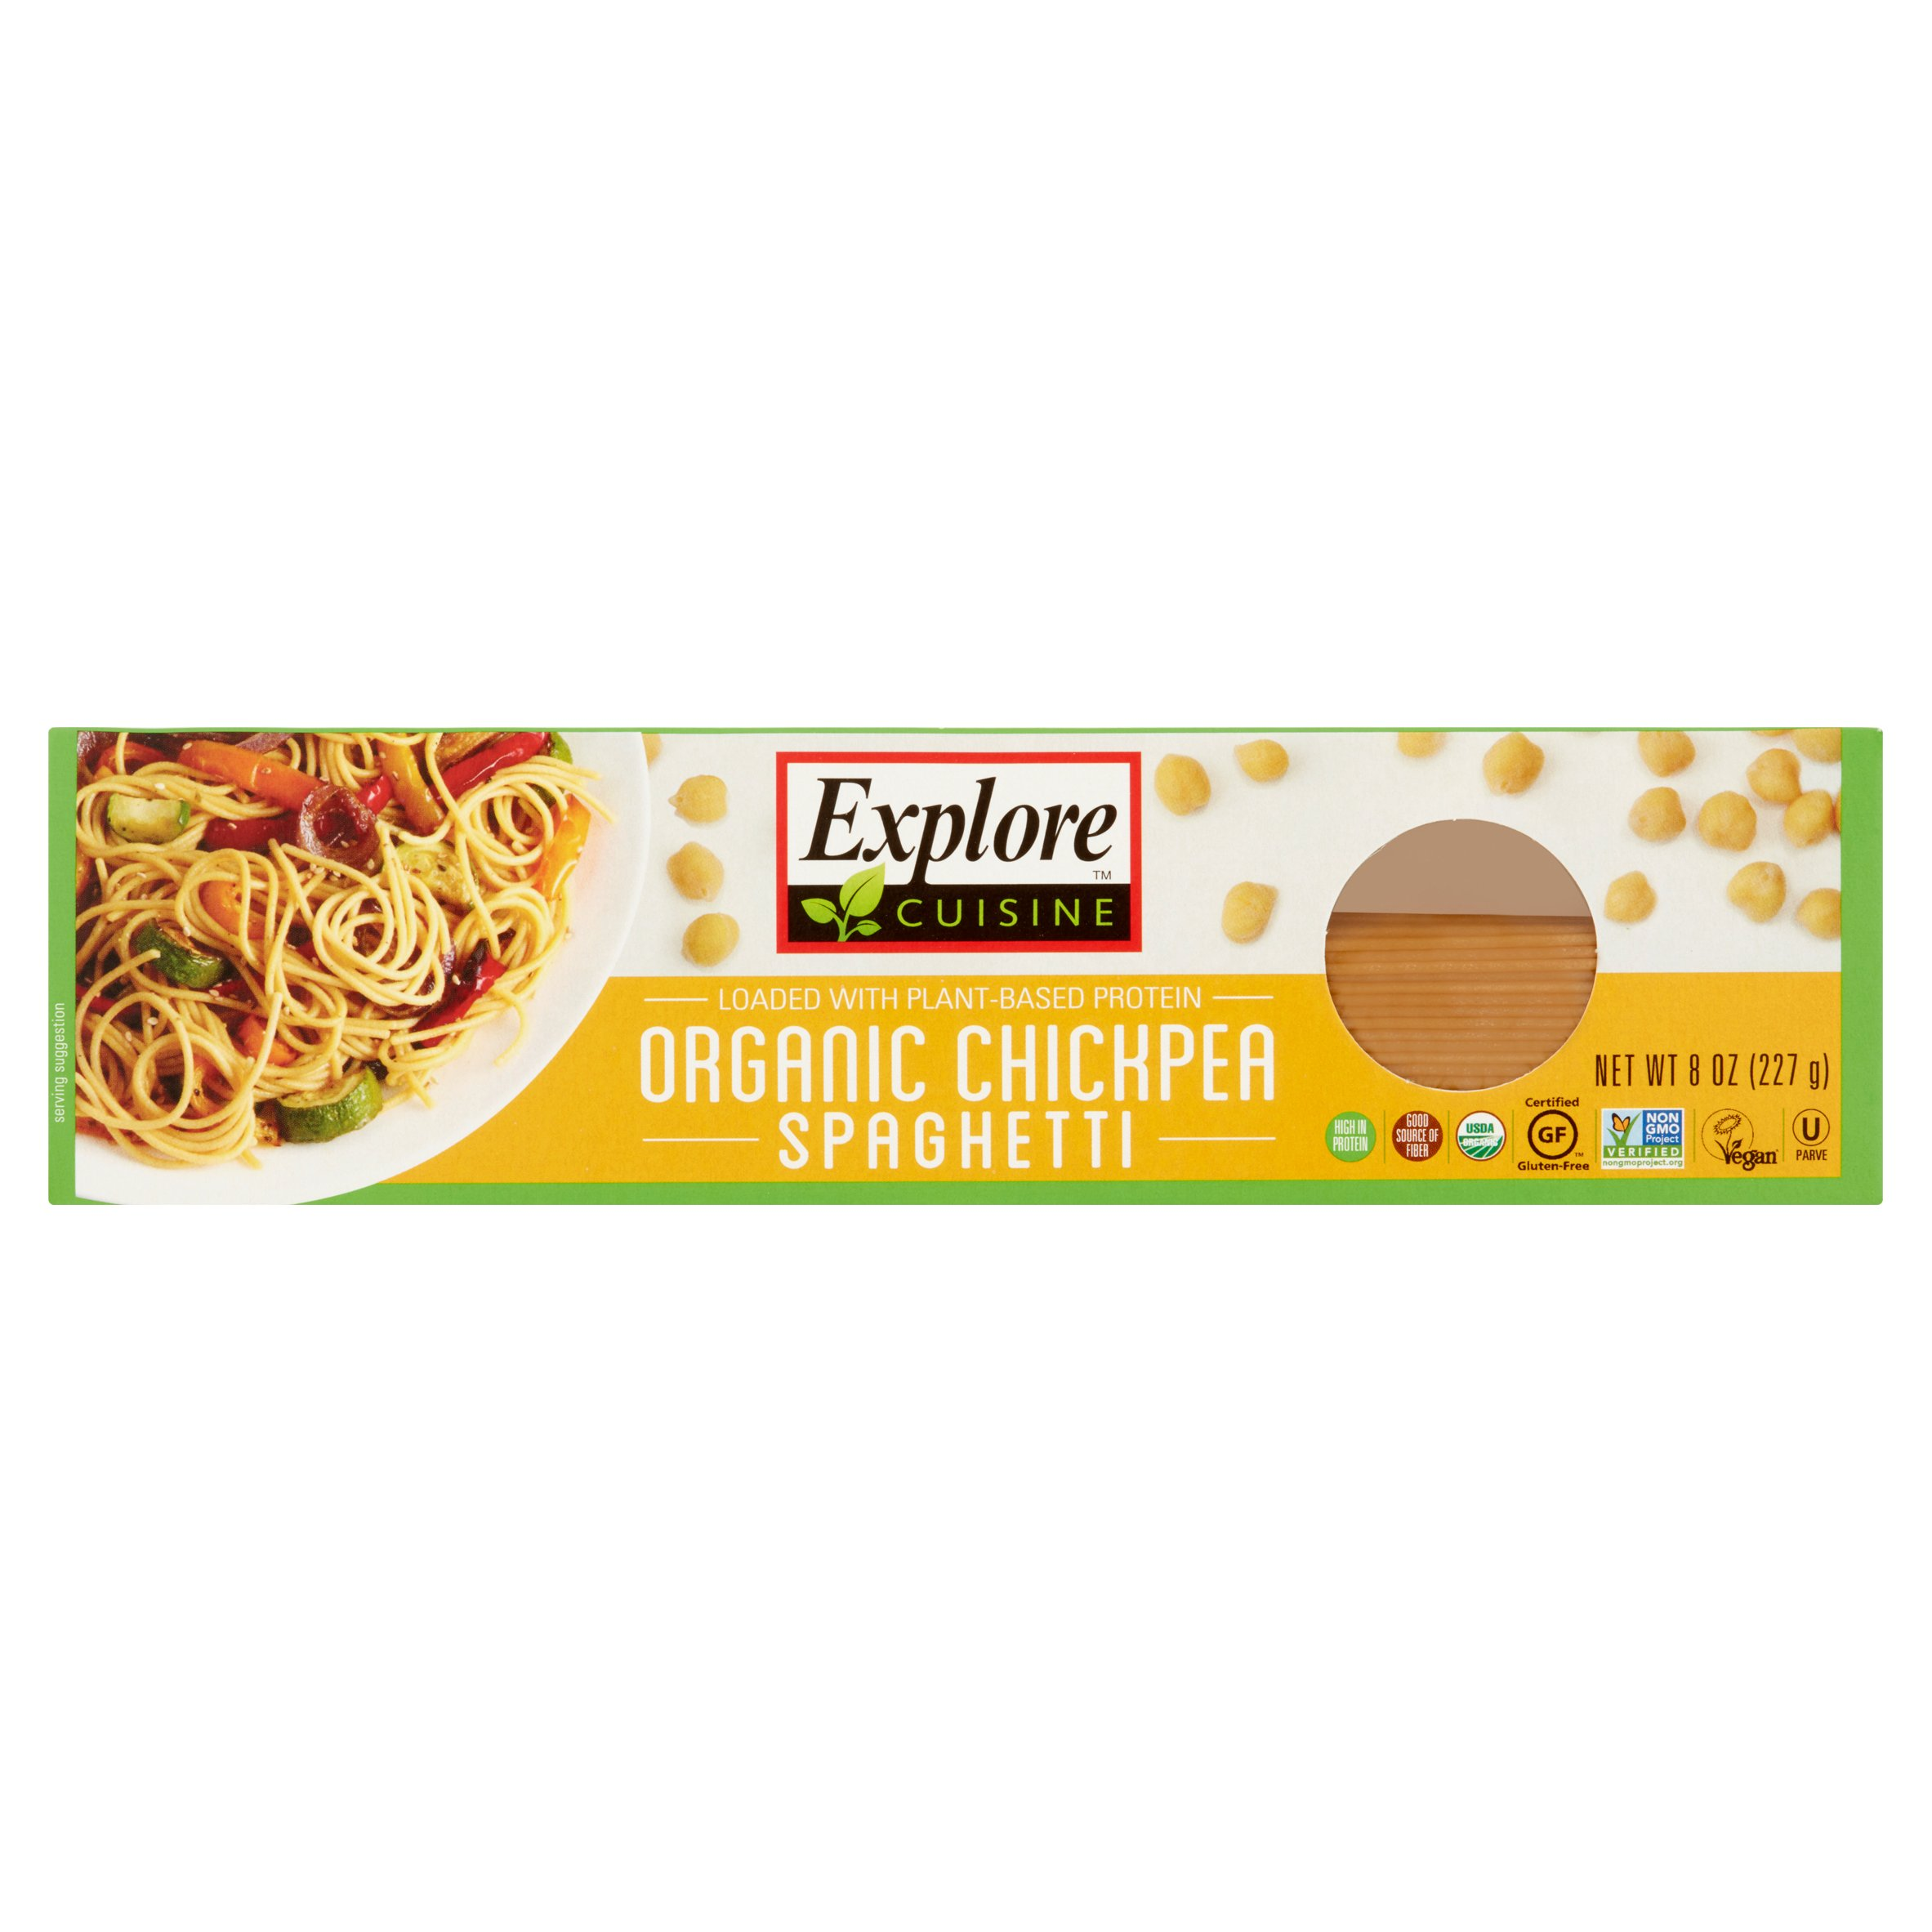 Explore Cuisine Organic Chickpea Spaghetti, 8 oz (Pack of 12)